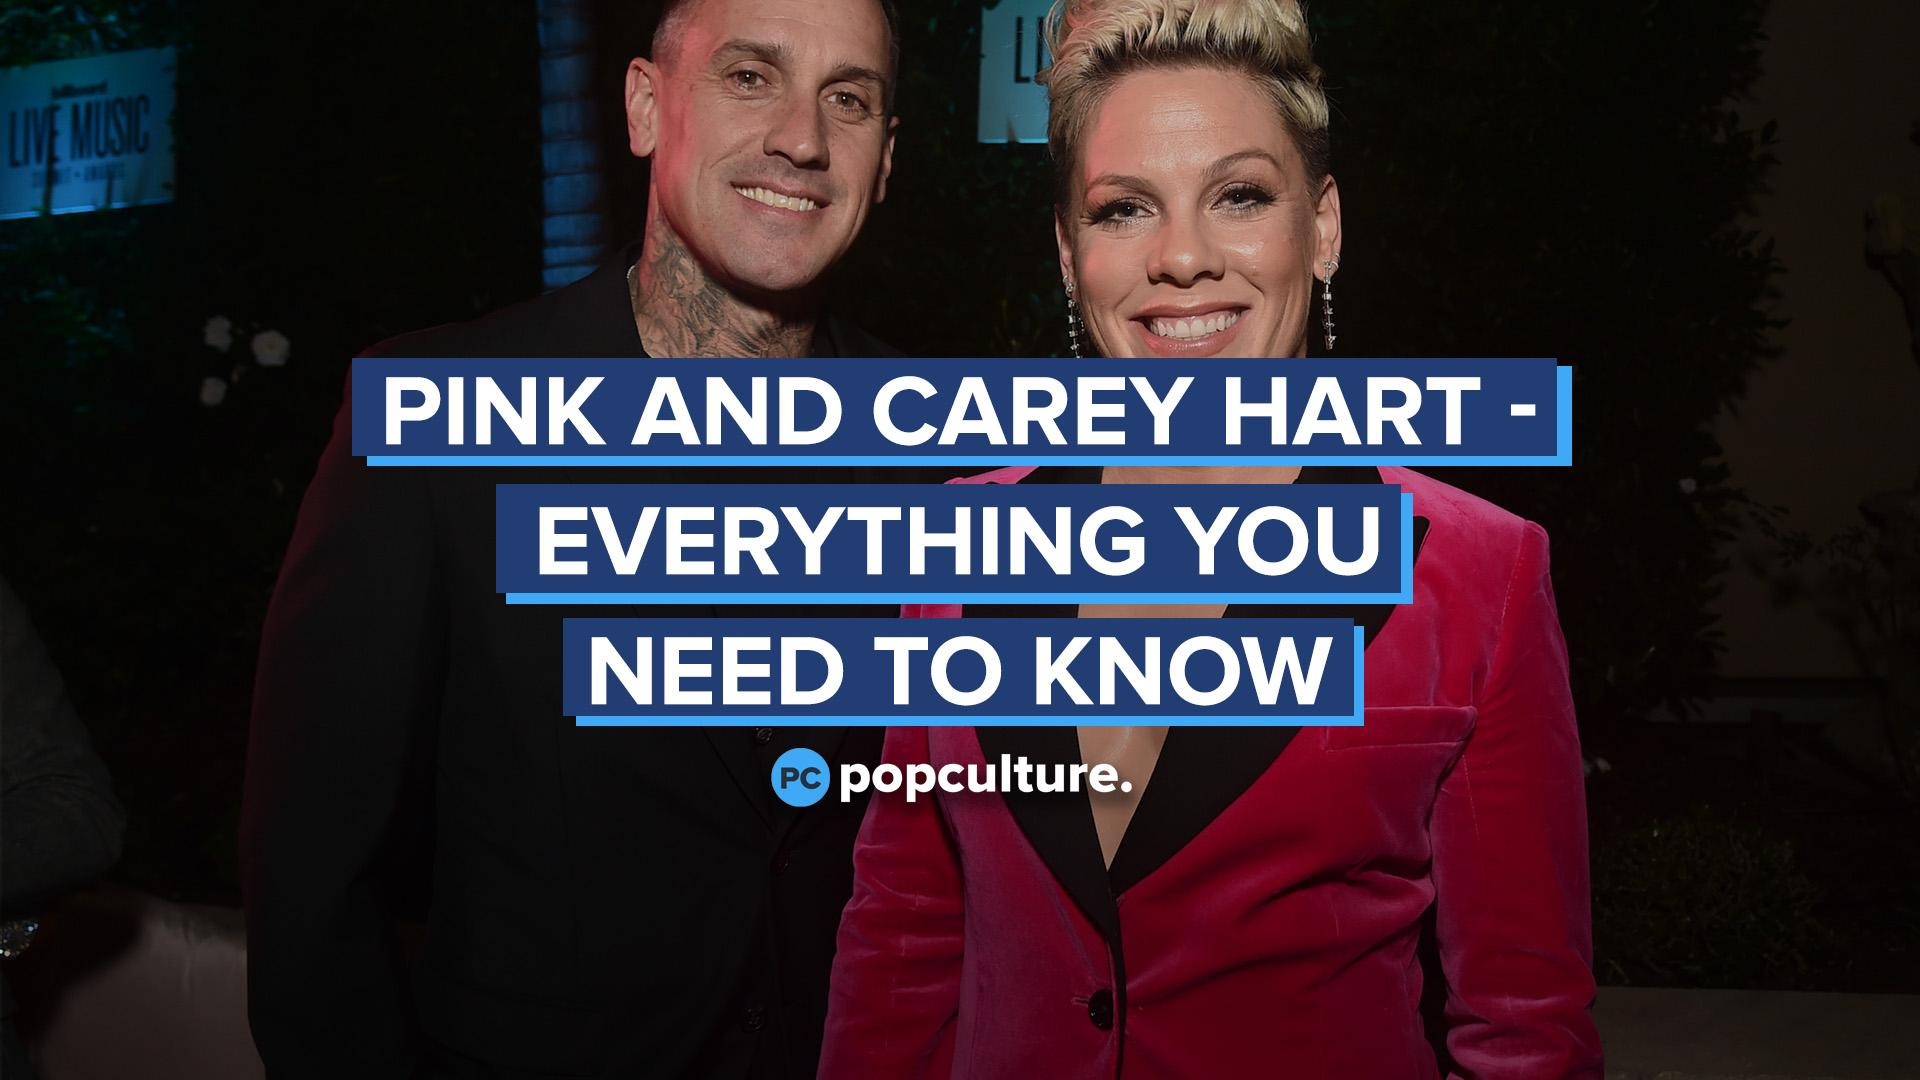 Pink and Carey Hart - Everything You Need to Know screen capture